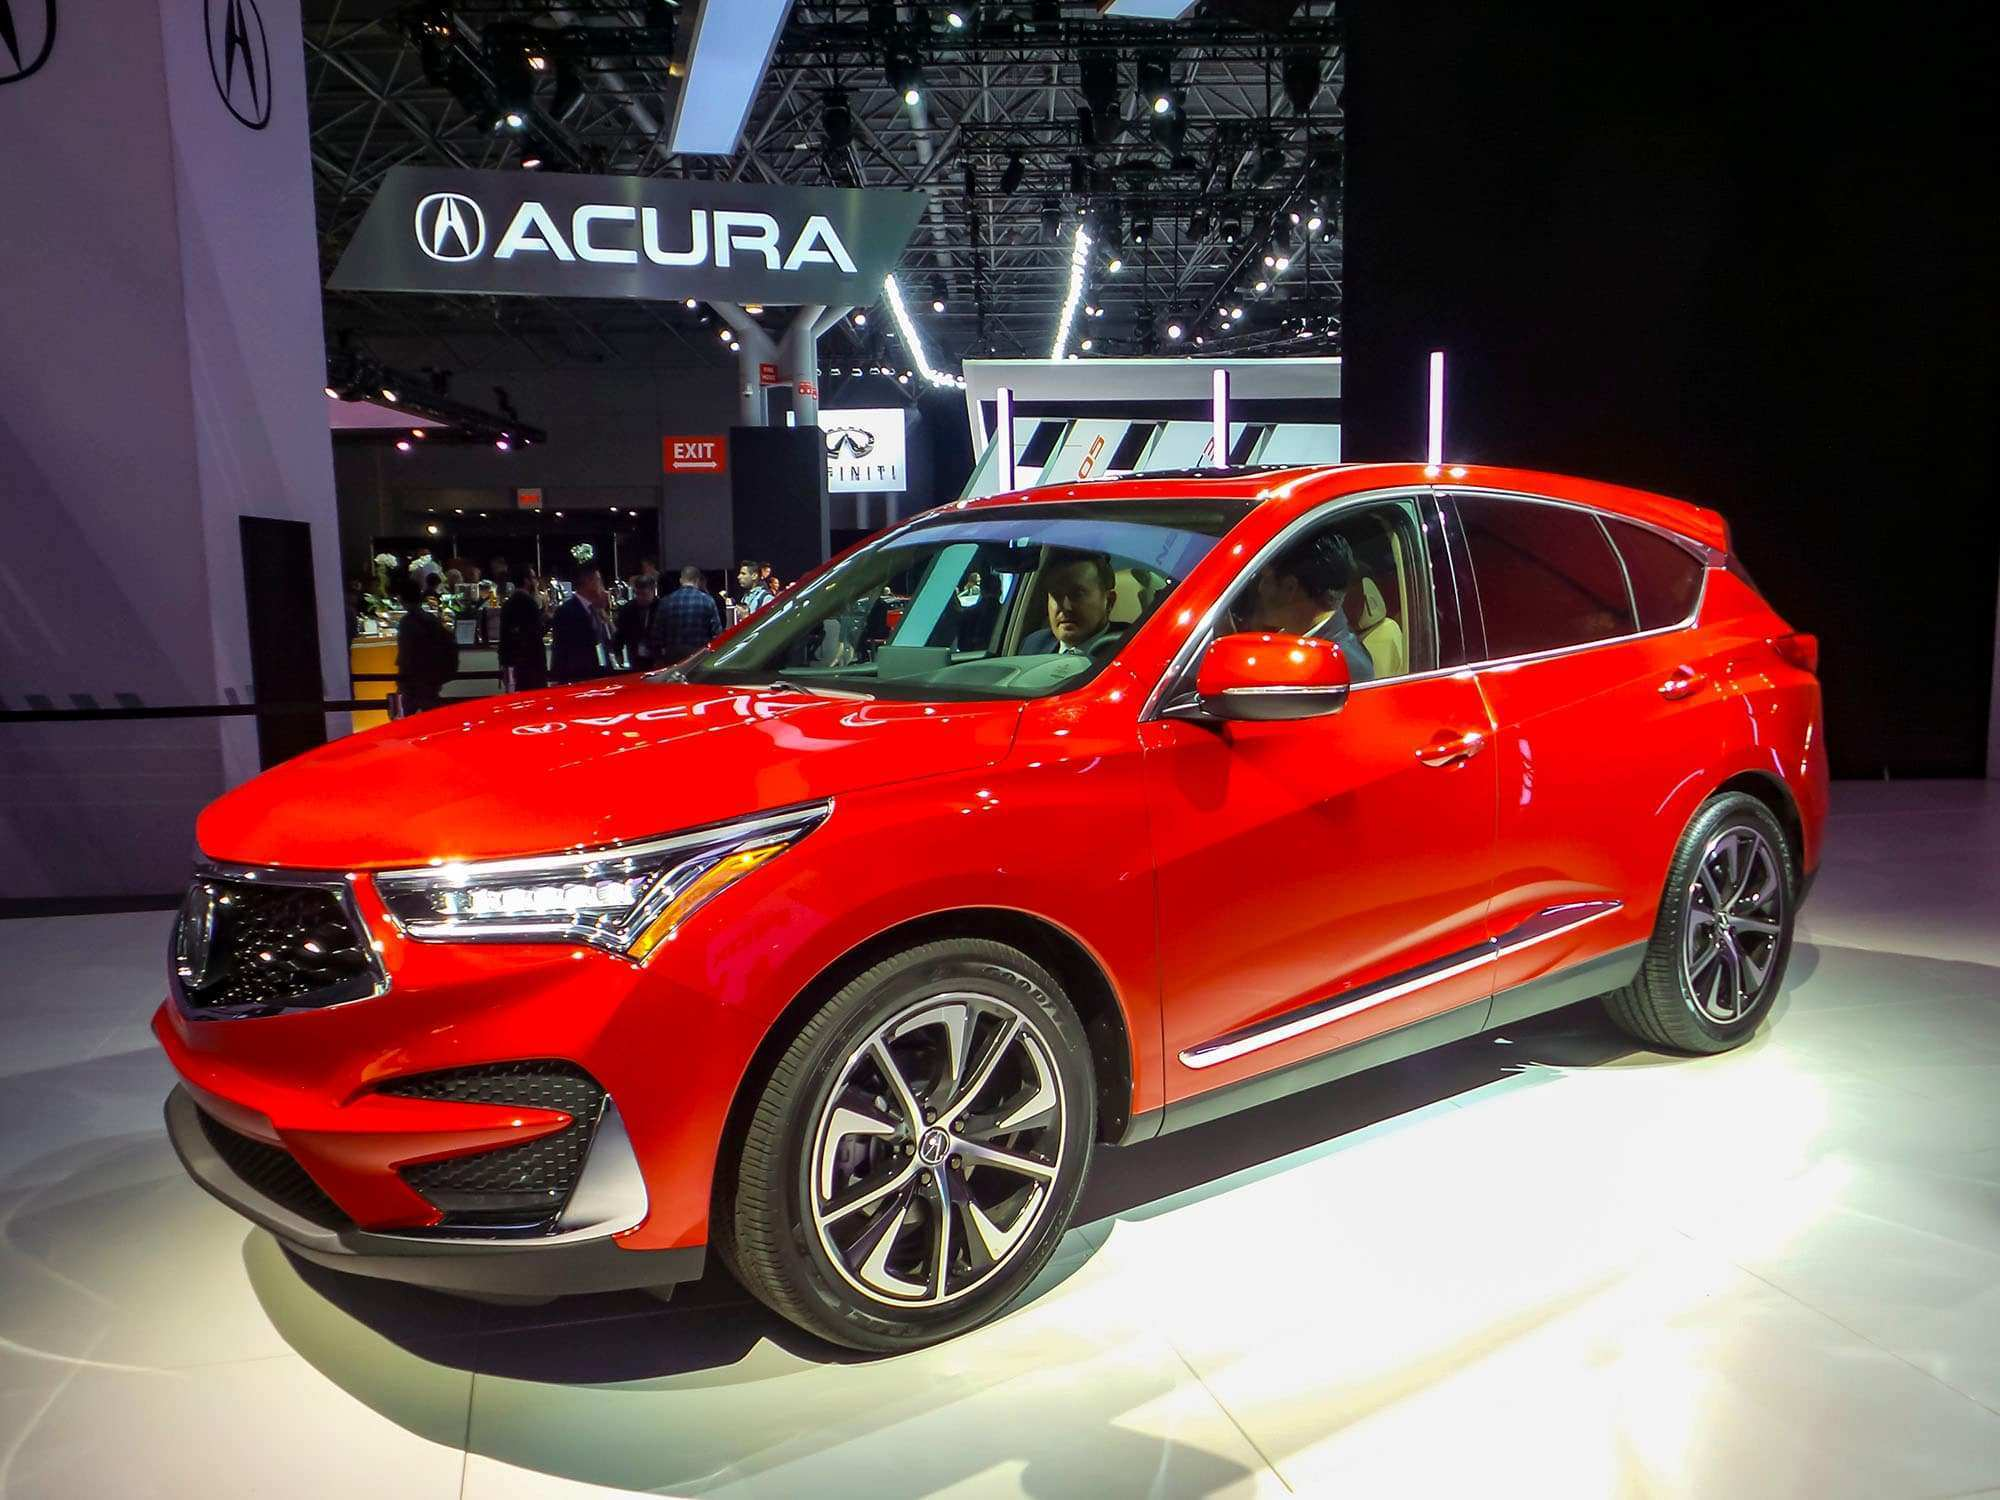 14 Best Review The Acura Rdx 2019 Lane Keep Assist Review Picture for The Acura Rdx 2019 Lane Keep Assist Review